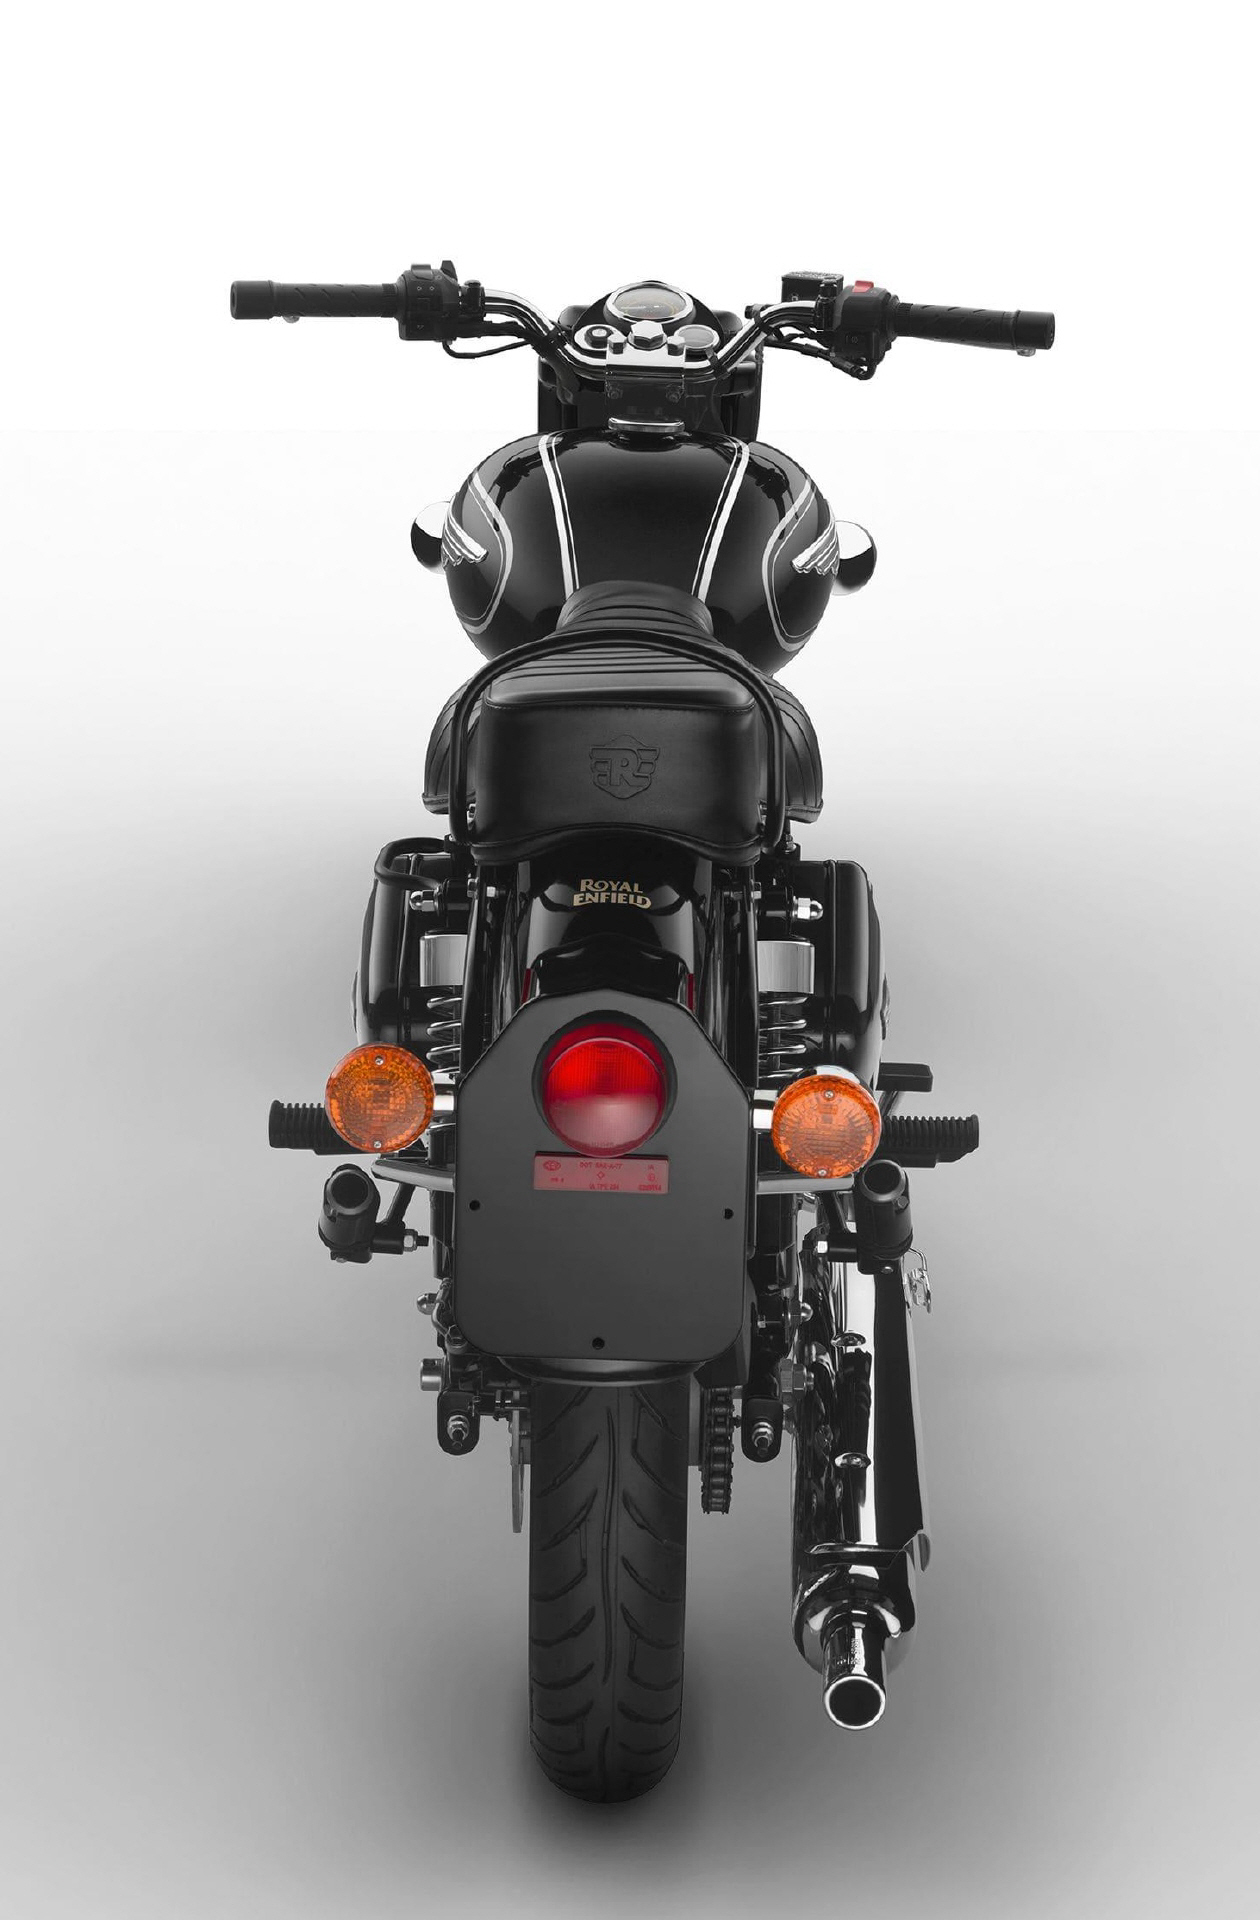 royalenfield_bullet_black_04jpg